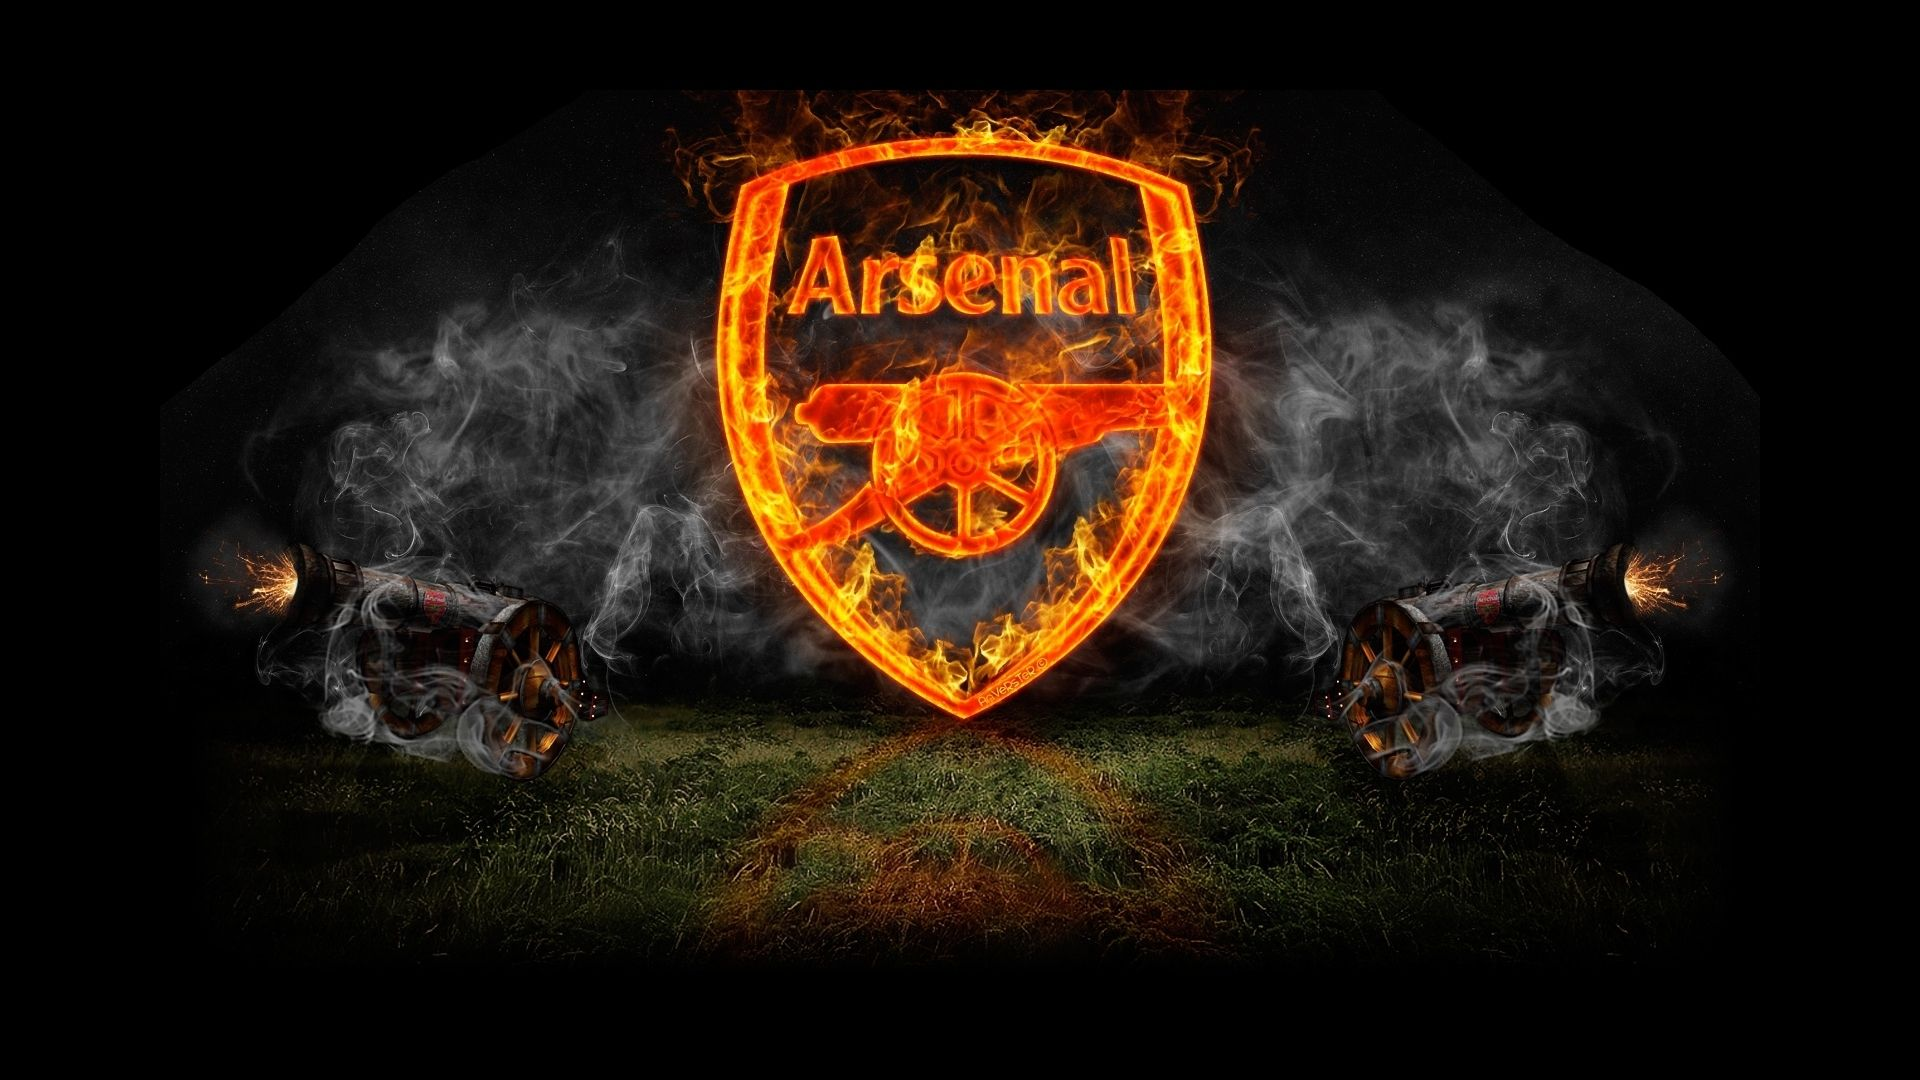 Wallpapers84 daily update fresh images and Arsenal Fc Logo